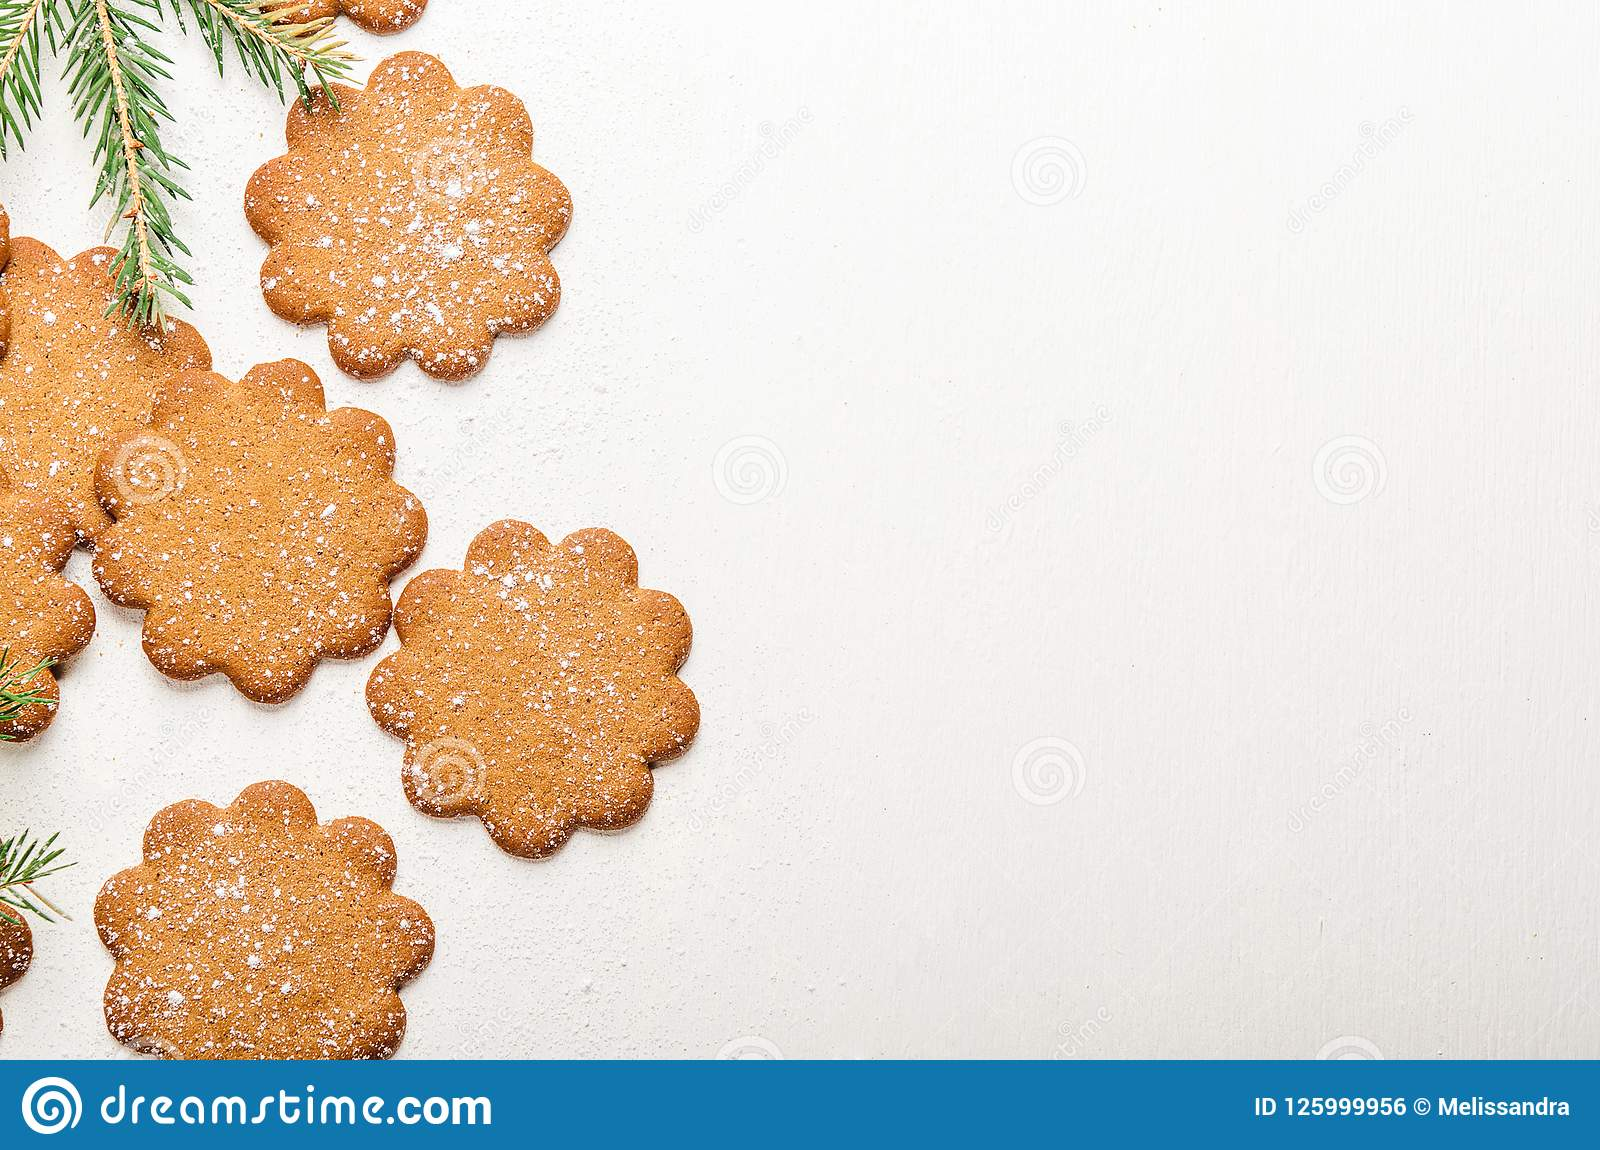 Sweet Thin Ginger Cookies On White Background With Powdered Sugar